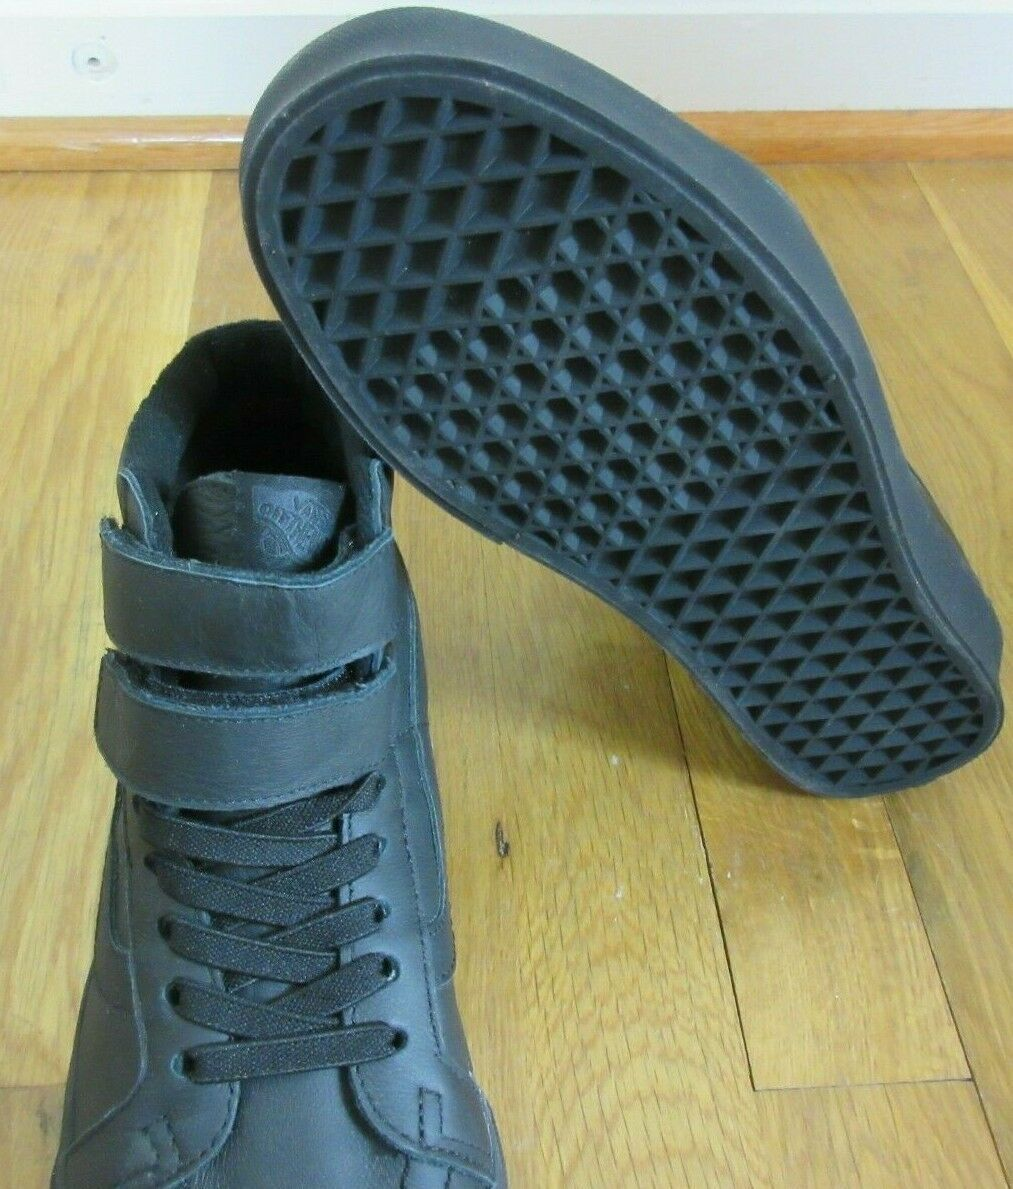 Vans Womens Sk8-Hi Reissue V Mono Leather All Black Skate shoes Size 8 NWT